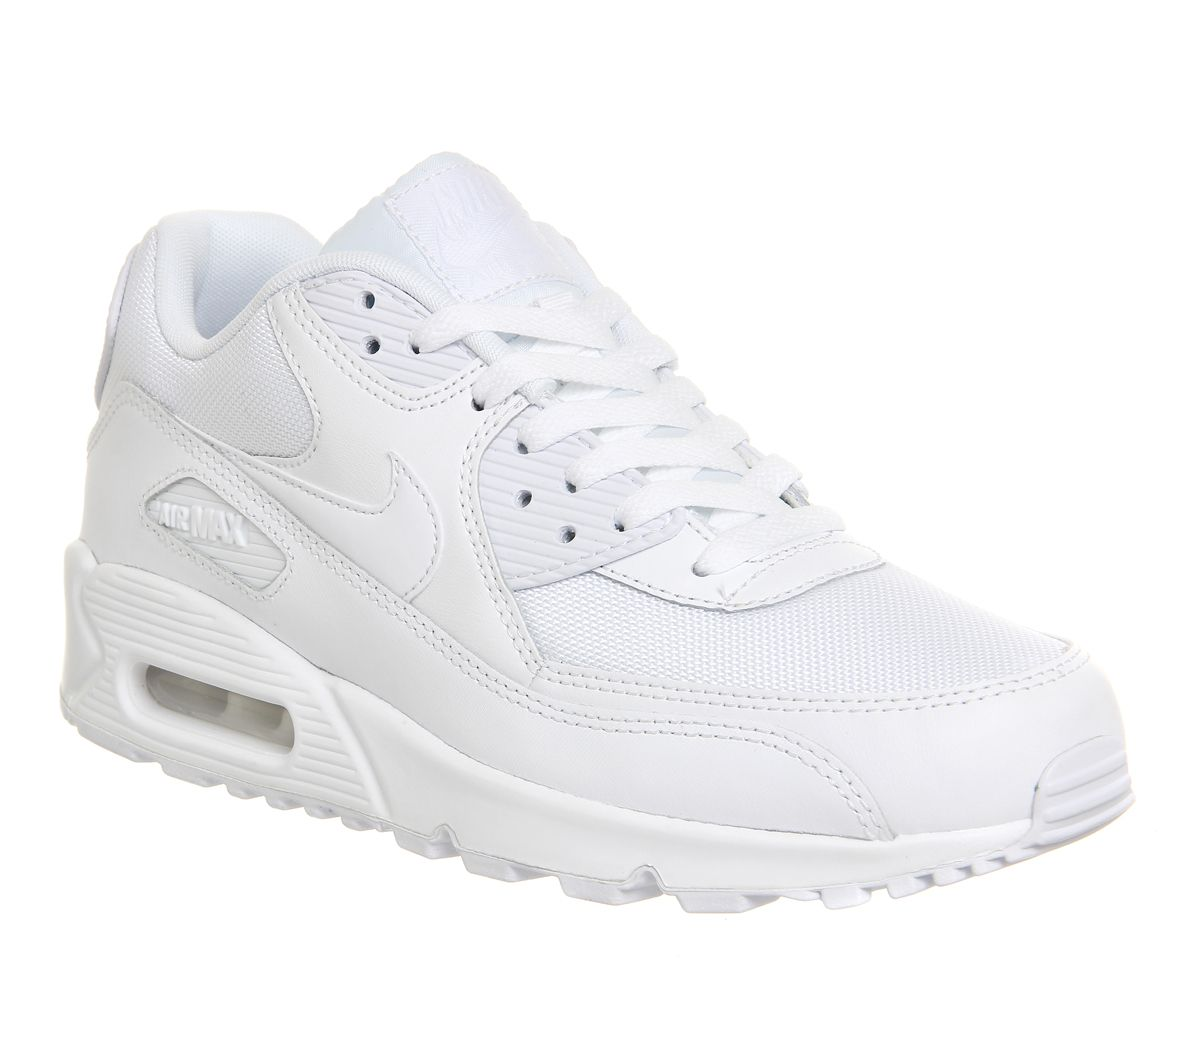 e7a3bd0b32 Nike Air Max 90 White Mono - His trainers